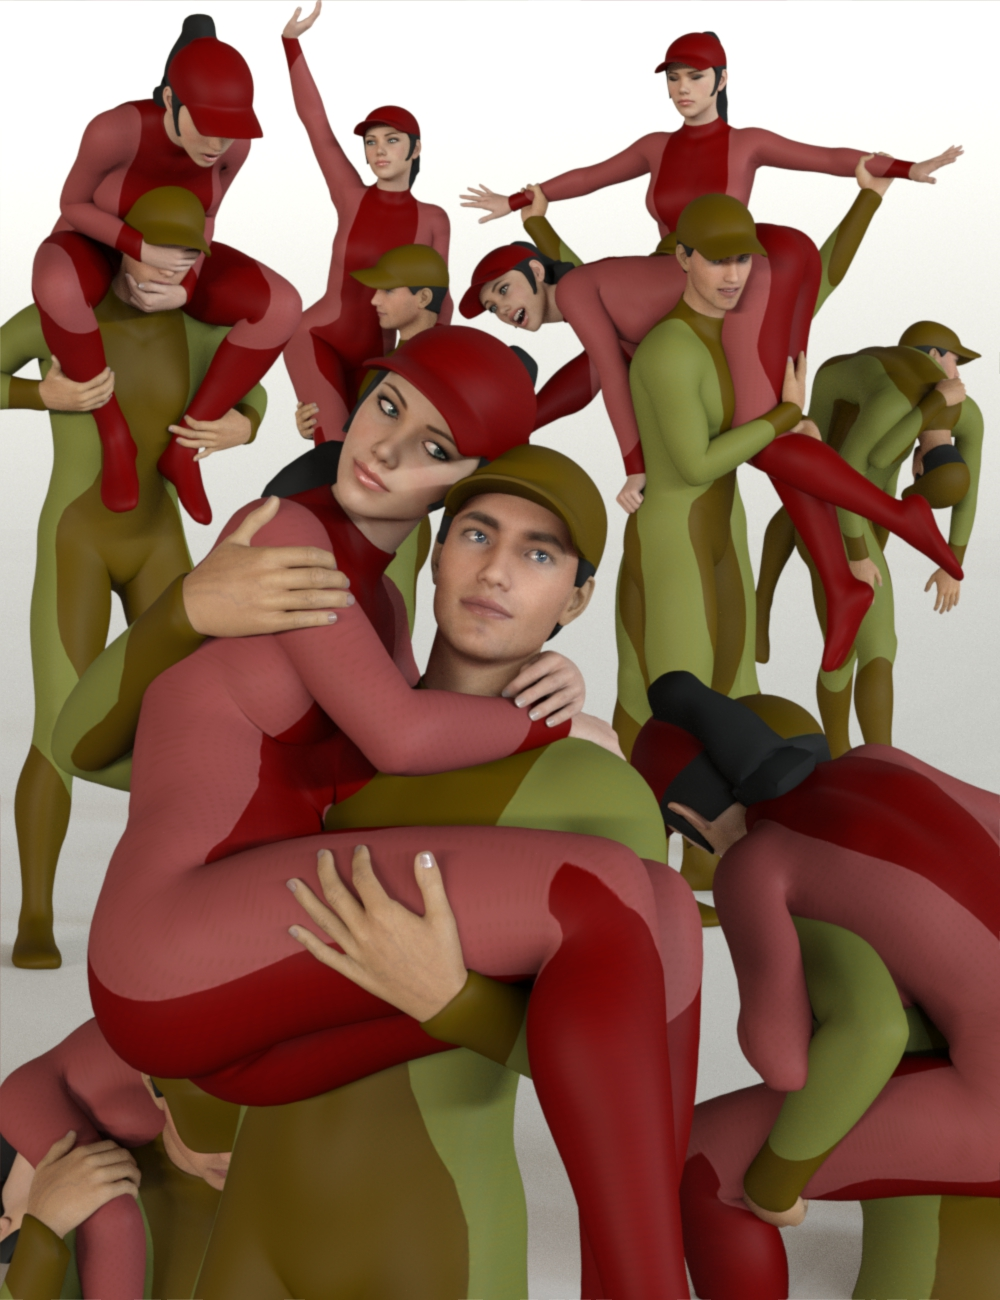 People Carrying People: 25 Pose Pairs (Genesis 8) by: atrilliongames, 3D Models by Daz 3D